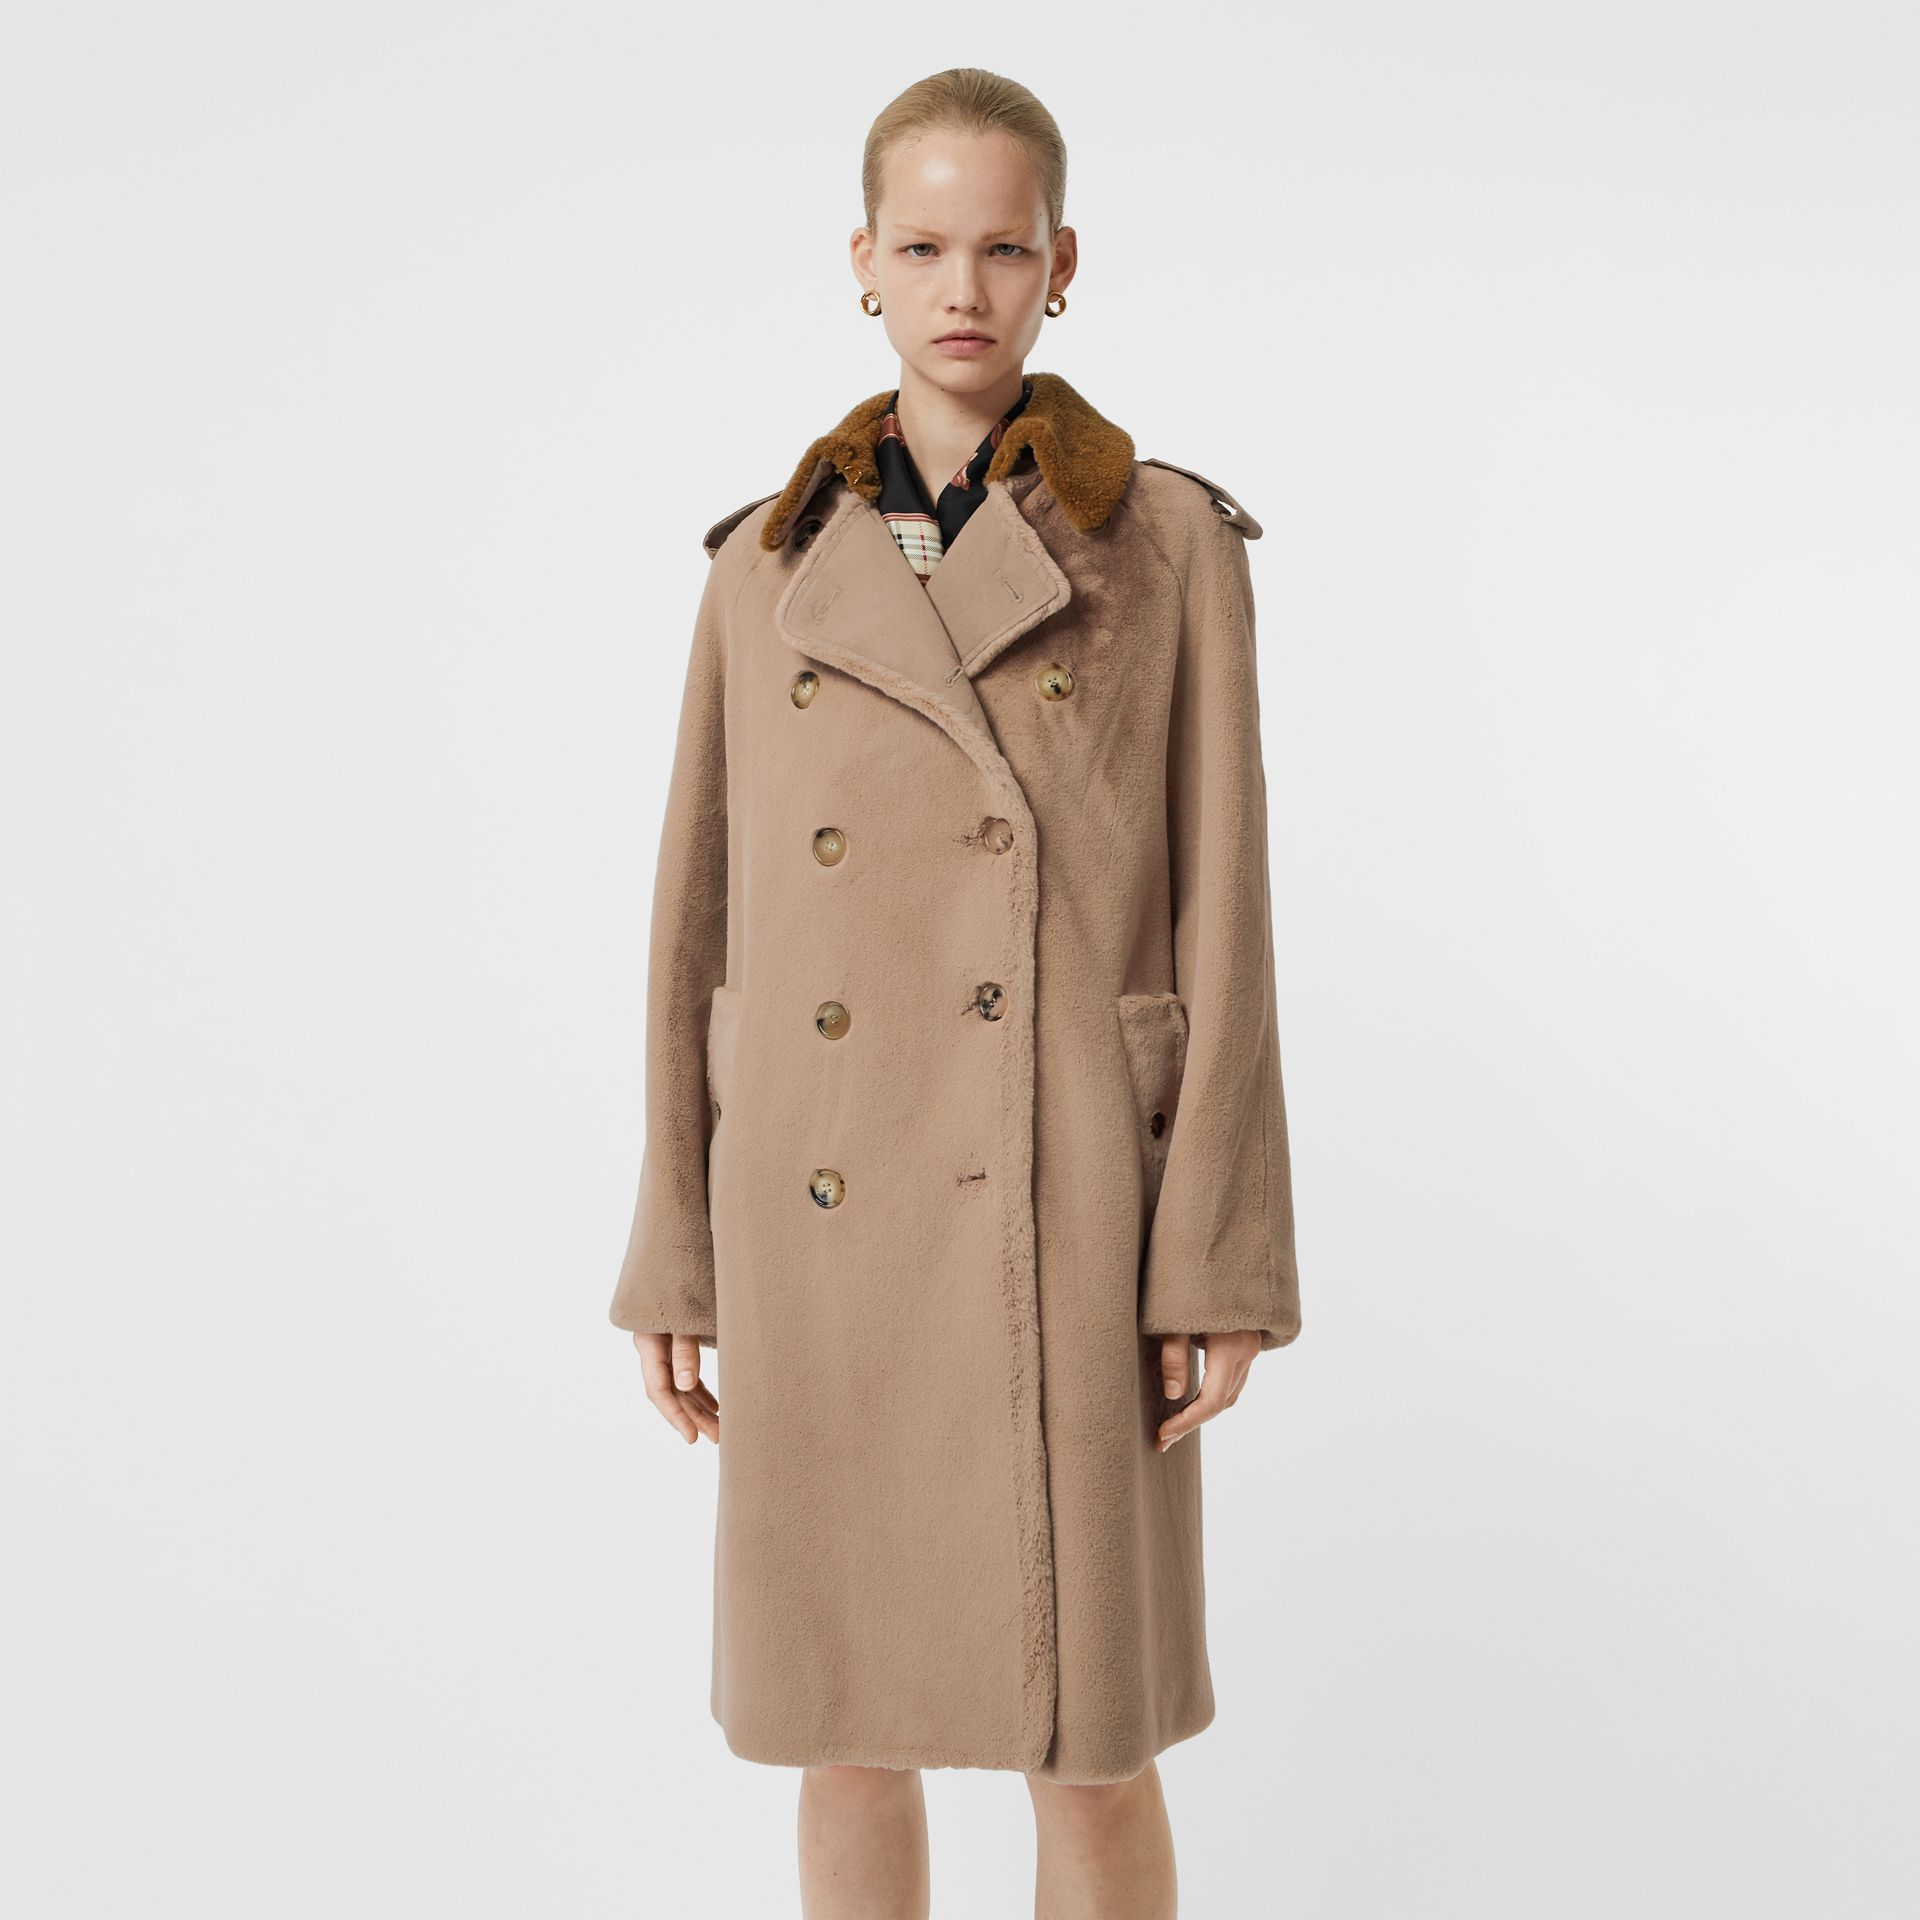 Shearling Trim Faux Fur Trench Coat in Taupe - Women | Burberry Hong Kong - gallery image 6